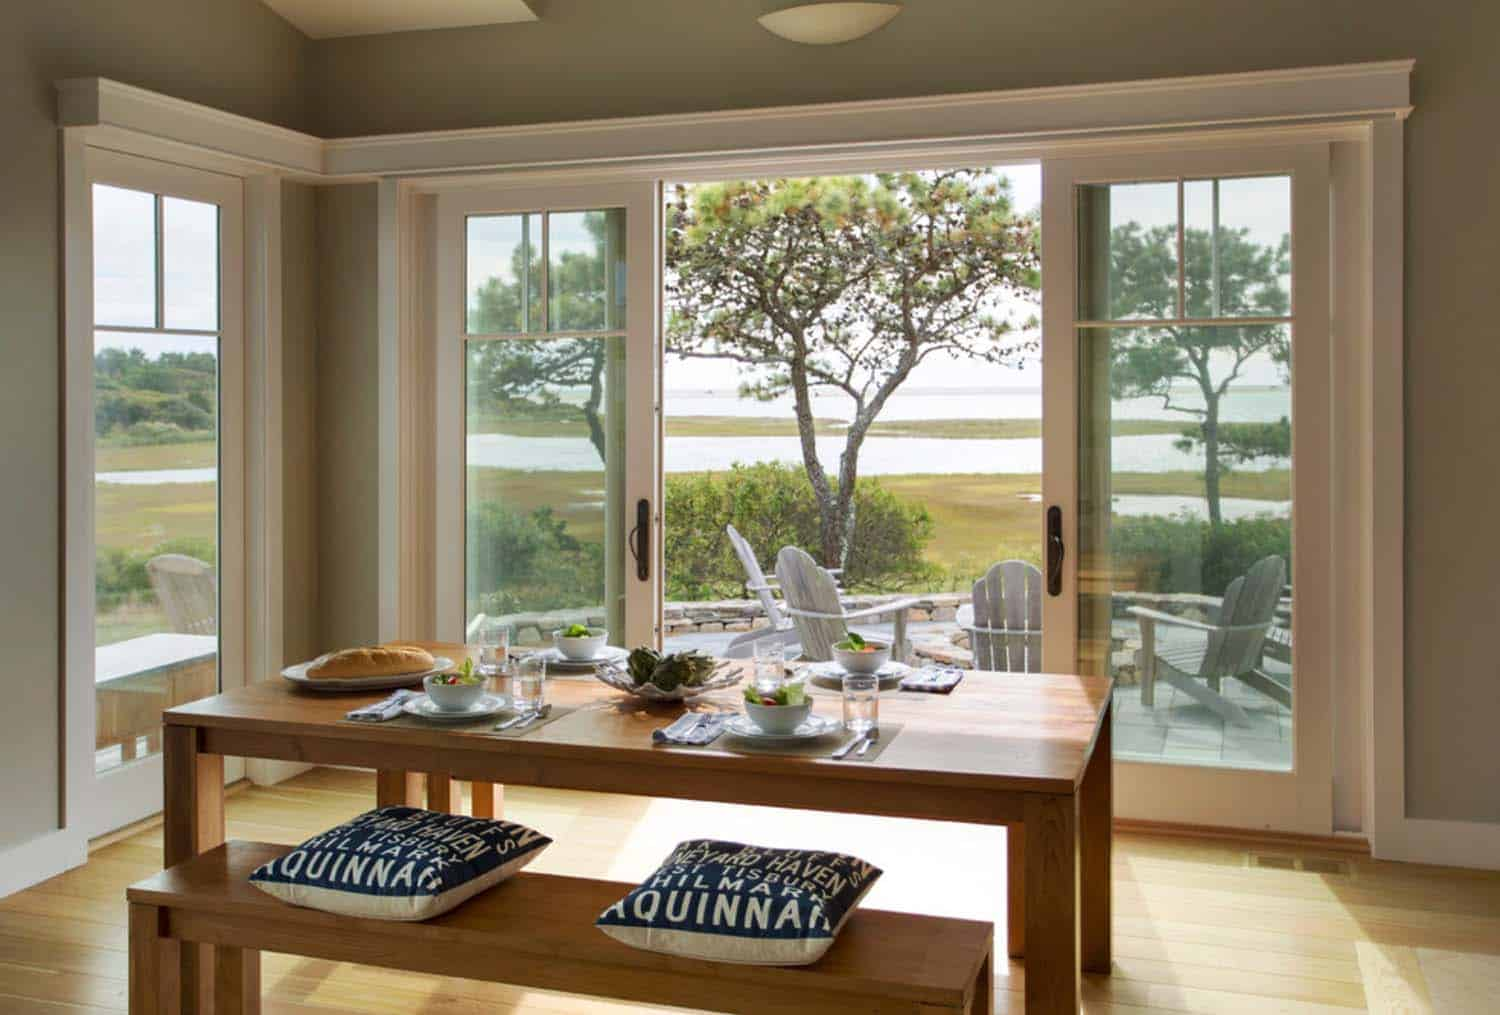 Beach House-Marthas Vineyard Interior Design-07-1 Kindesign